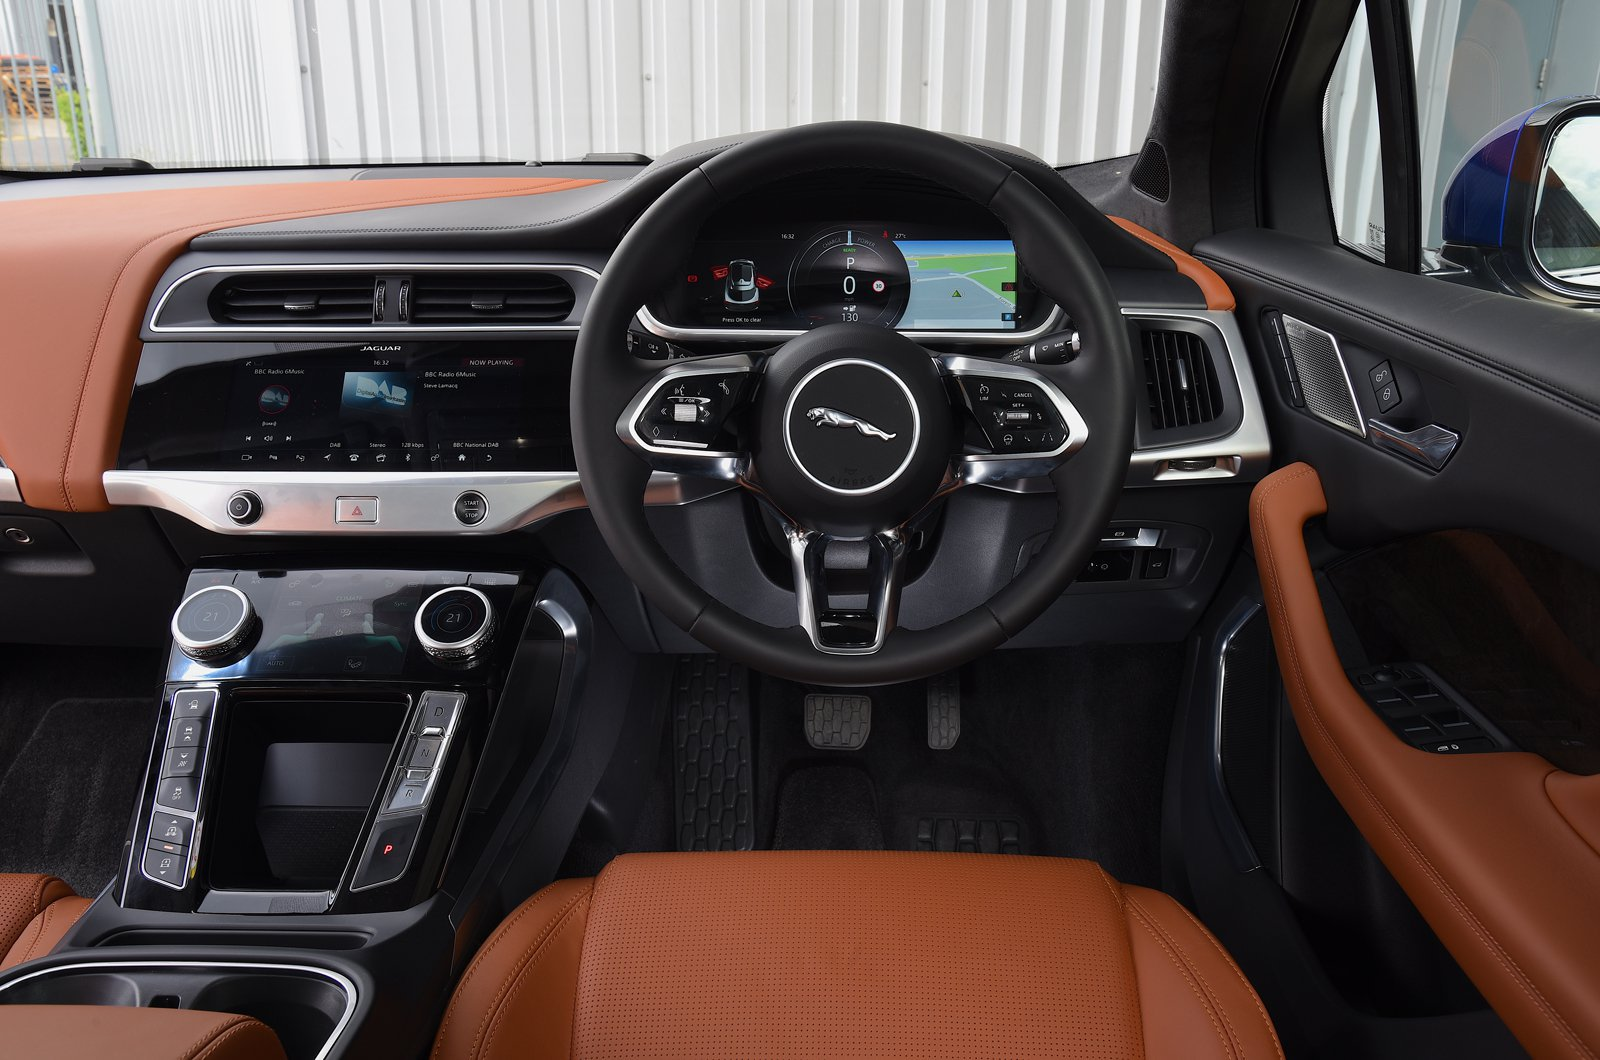 2018 Jaguar I-Pace - interior